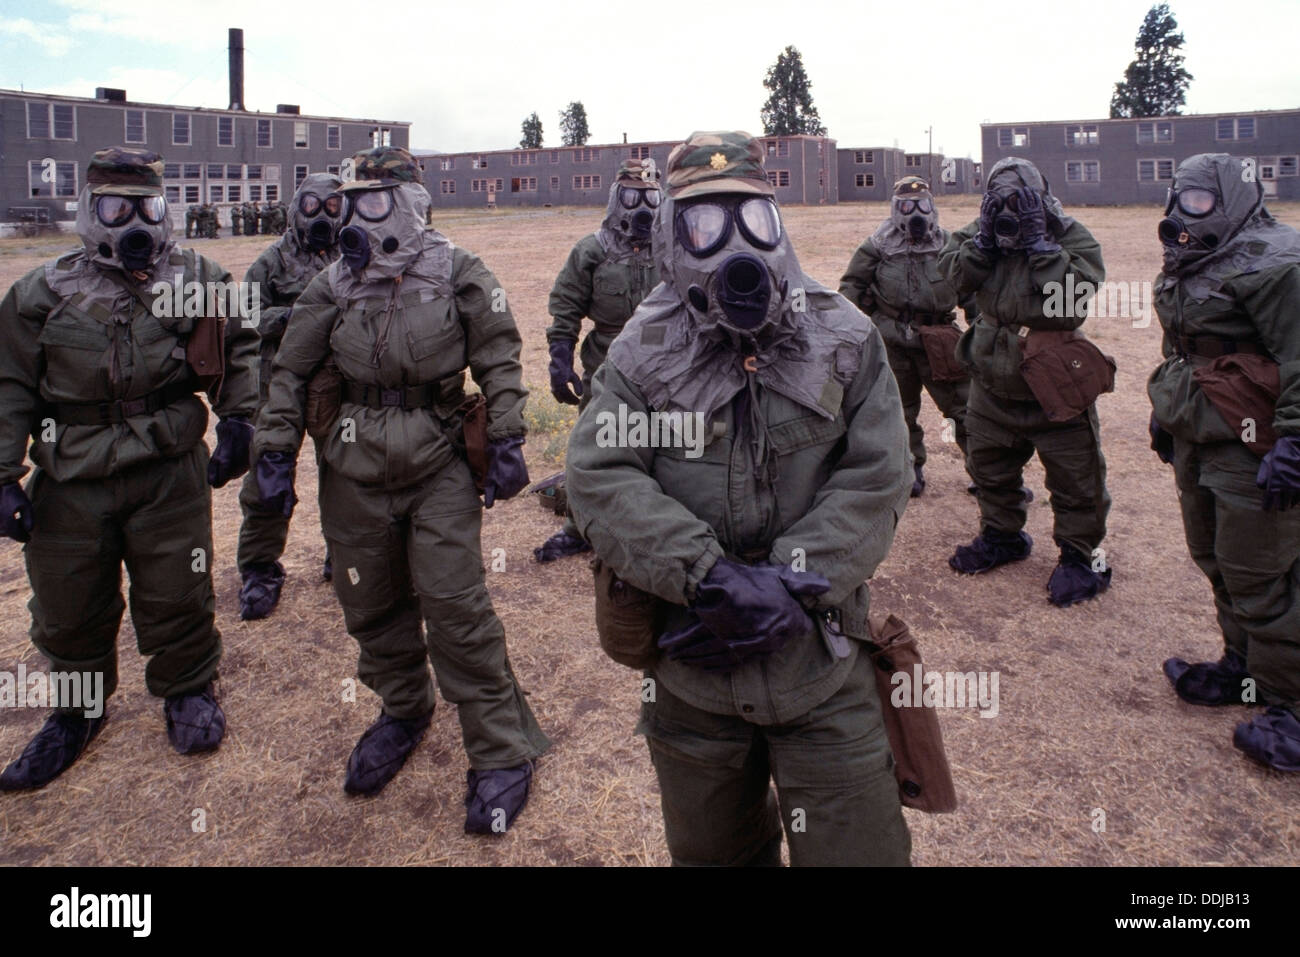 Doctors, 347th Army Medical Reserve unit wearing gas masks and protective clothing during chemical weapons training - Stock Image